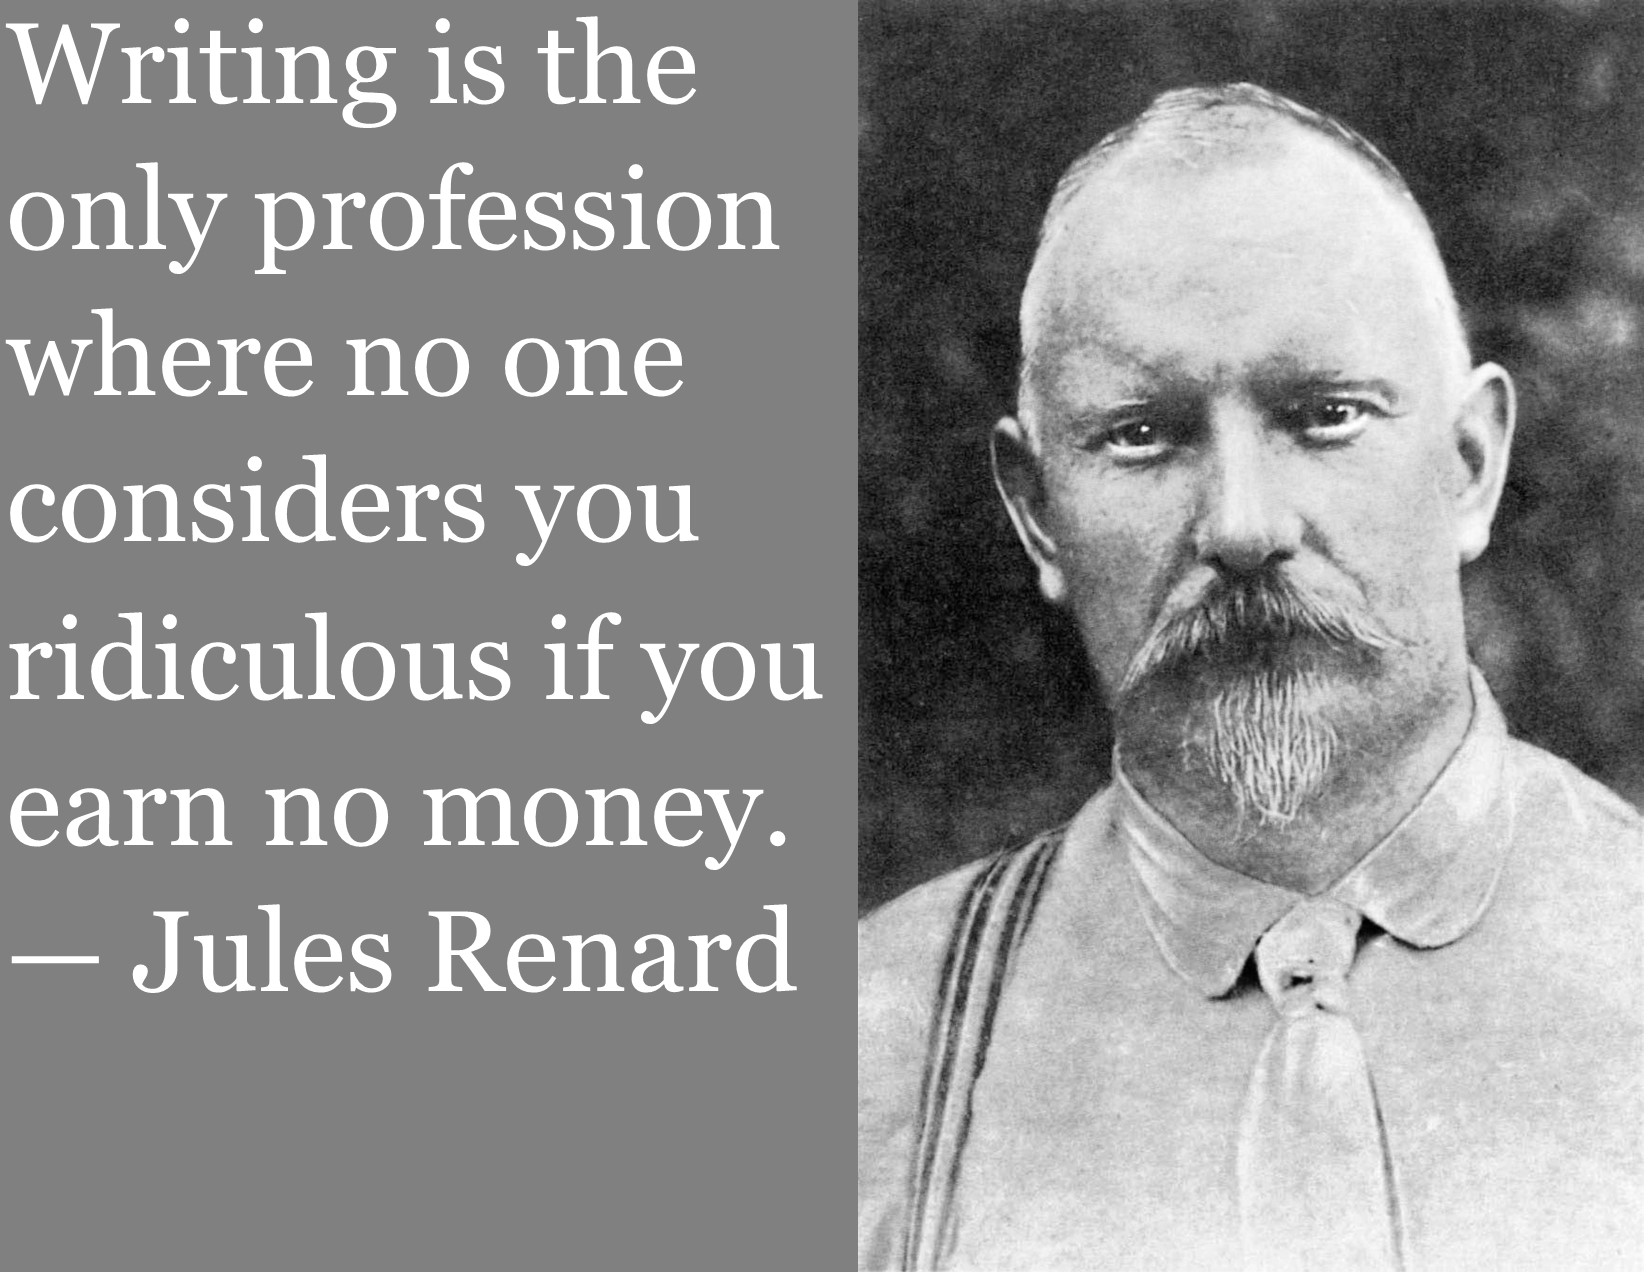 Writing is the only profession where no one considers you ridiculous if you earn no money. ~Jules Renard [1650×1275] [OC]